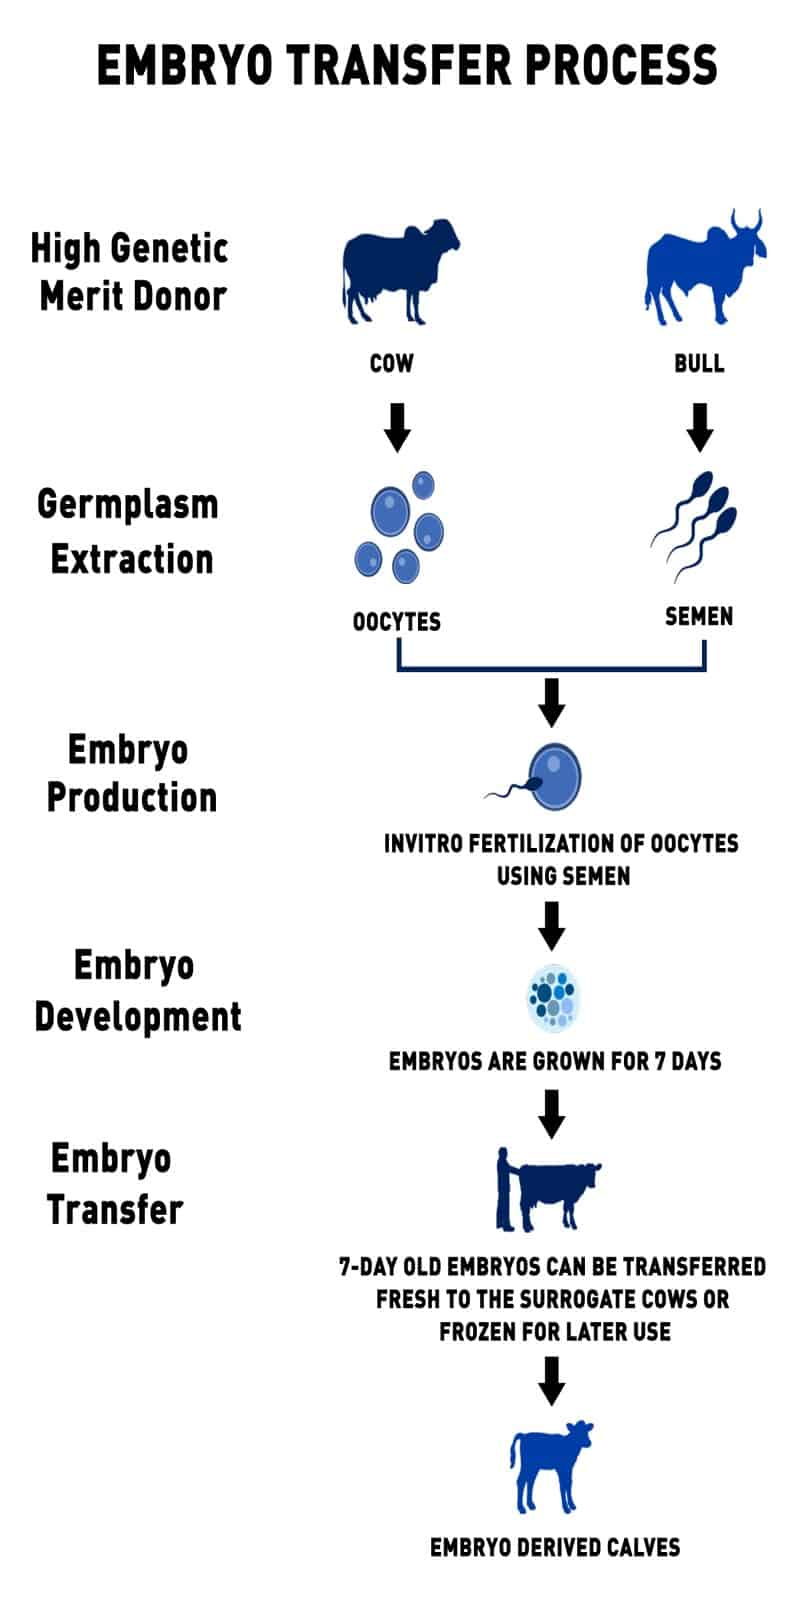 Embryo Transfer Technology